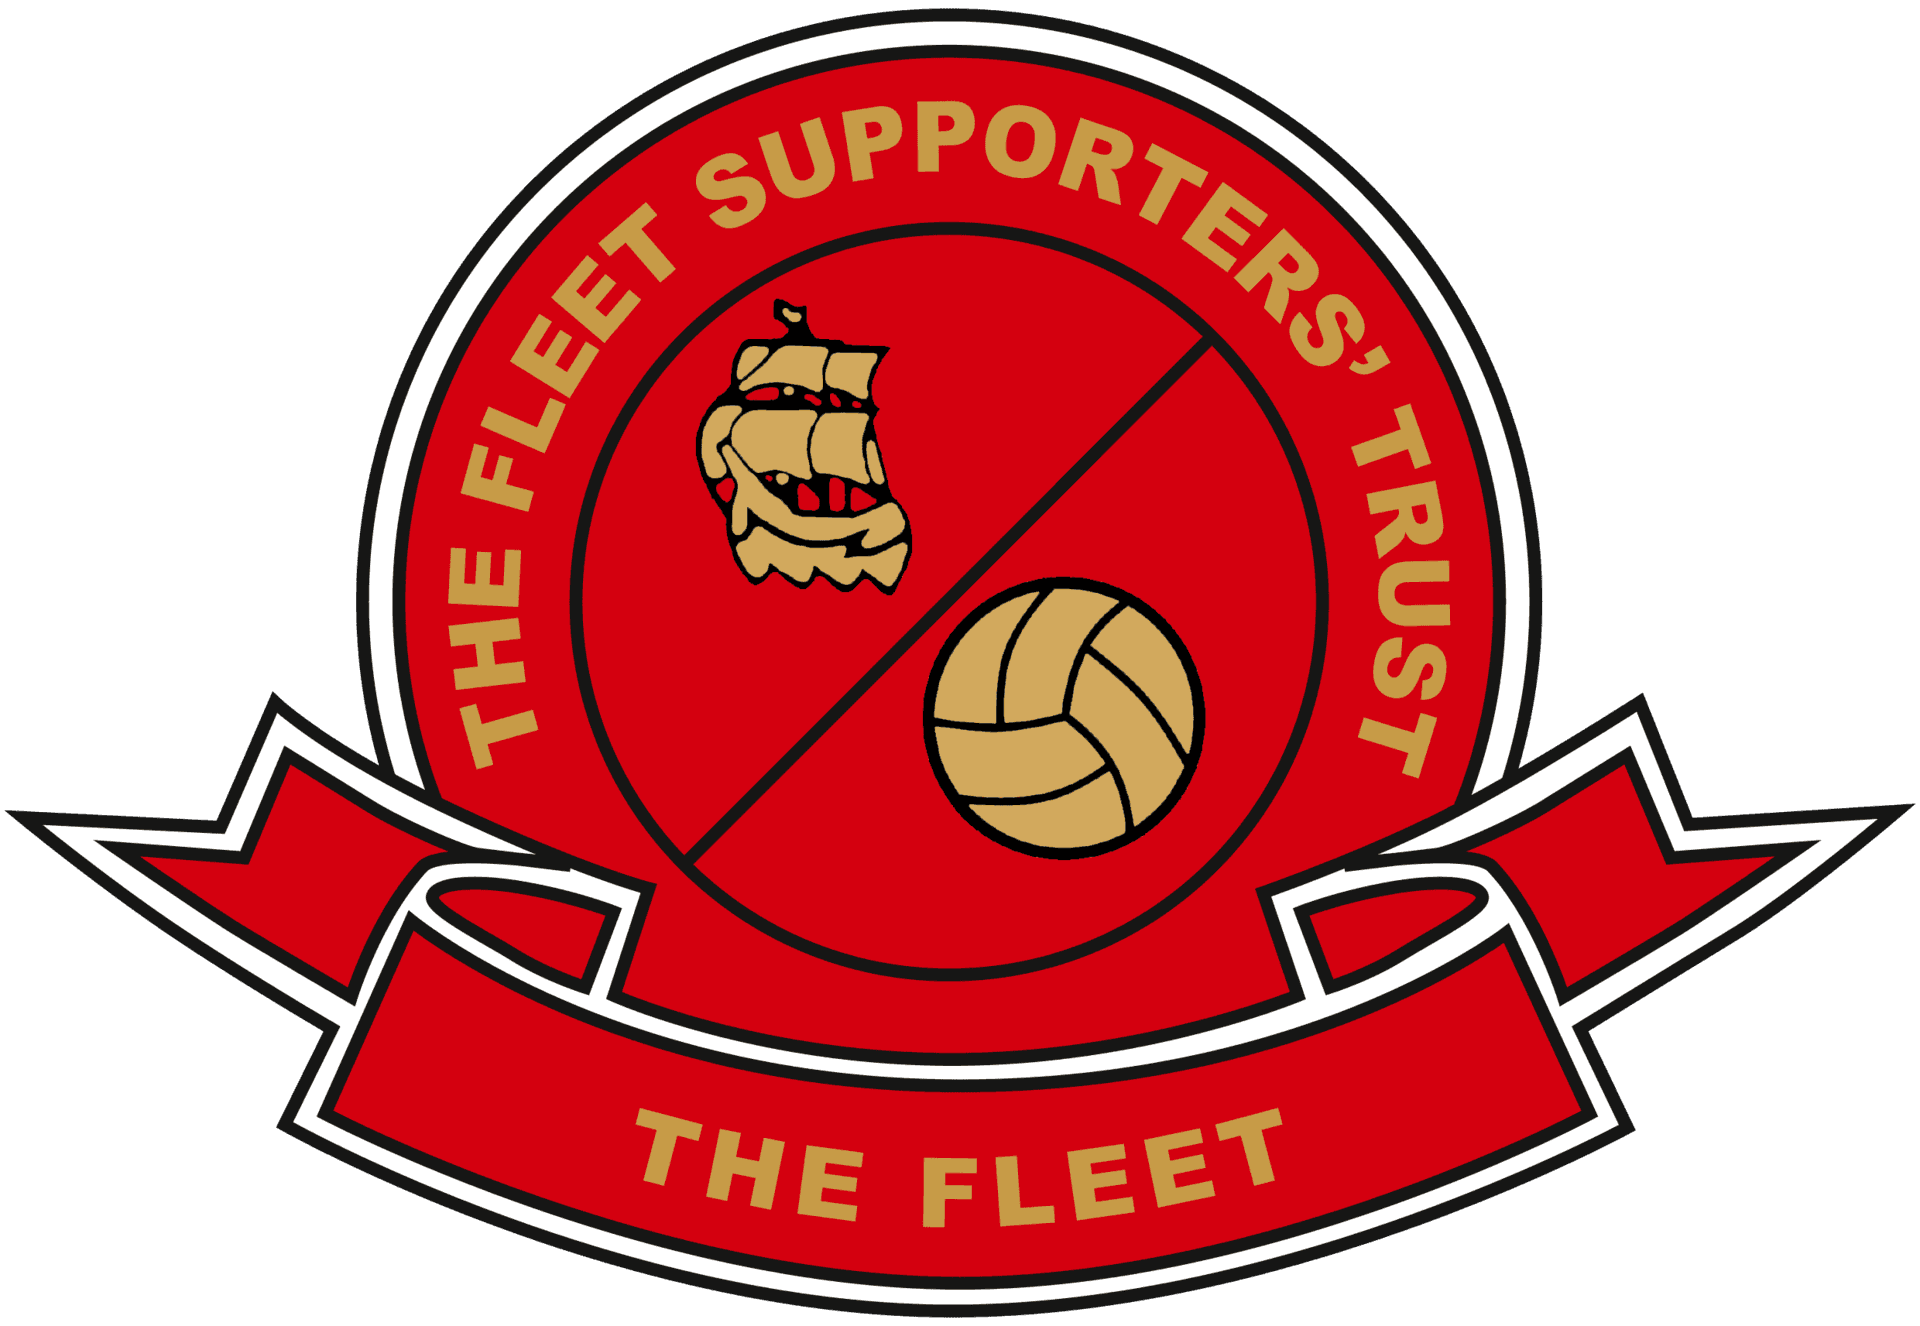 THE FLEET SUPPORTERS' TRUST